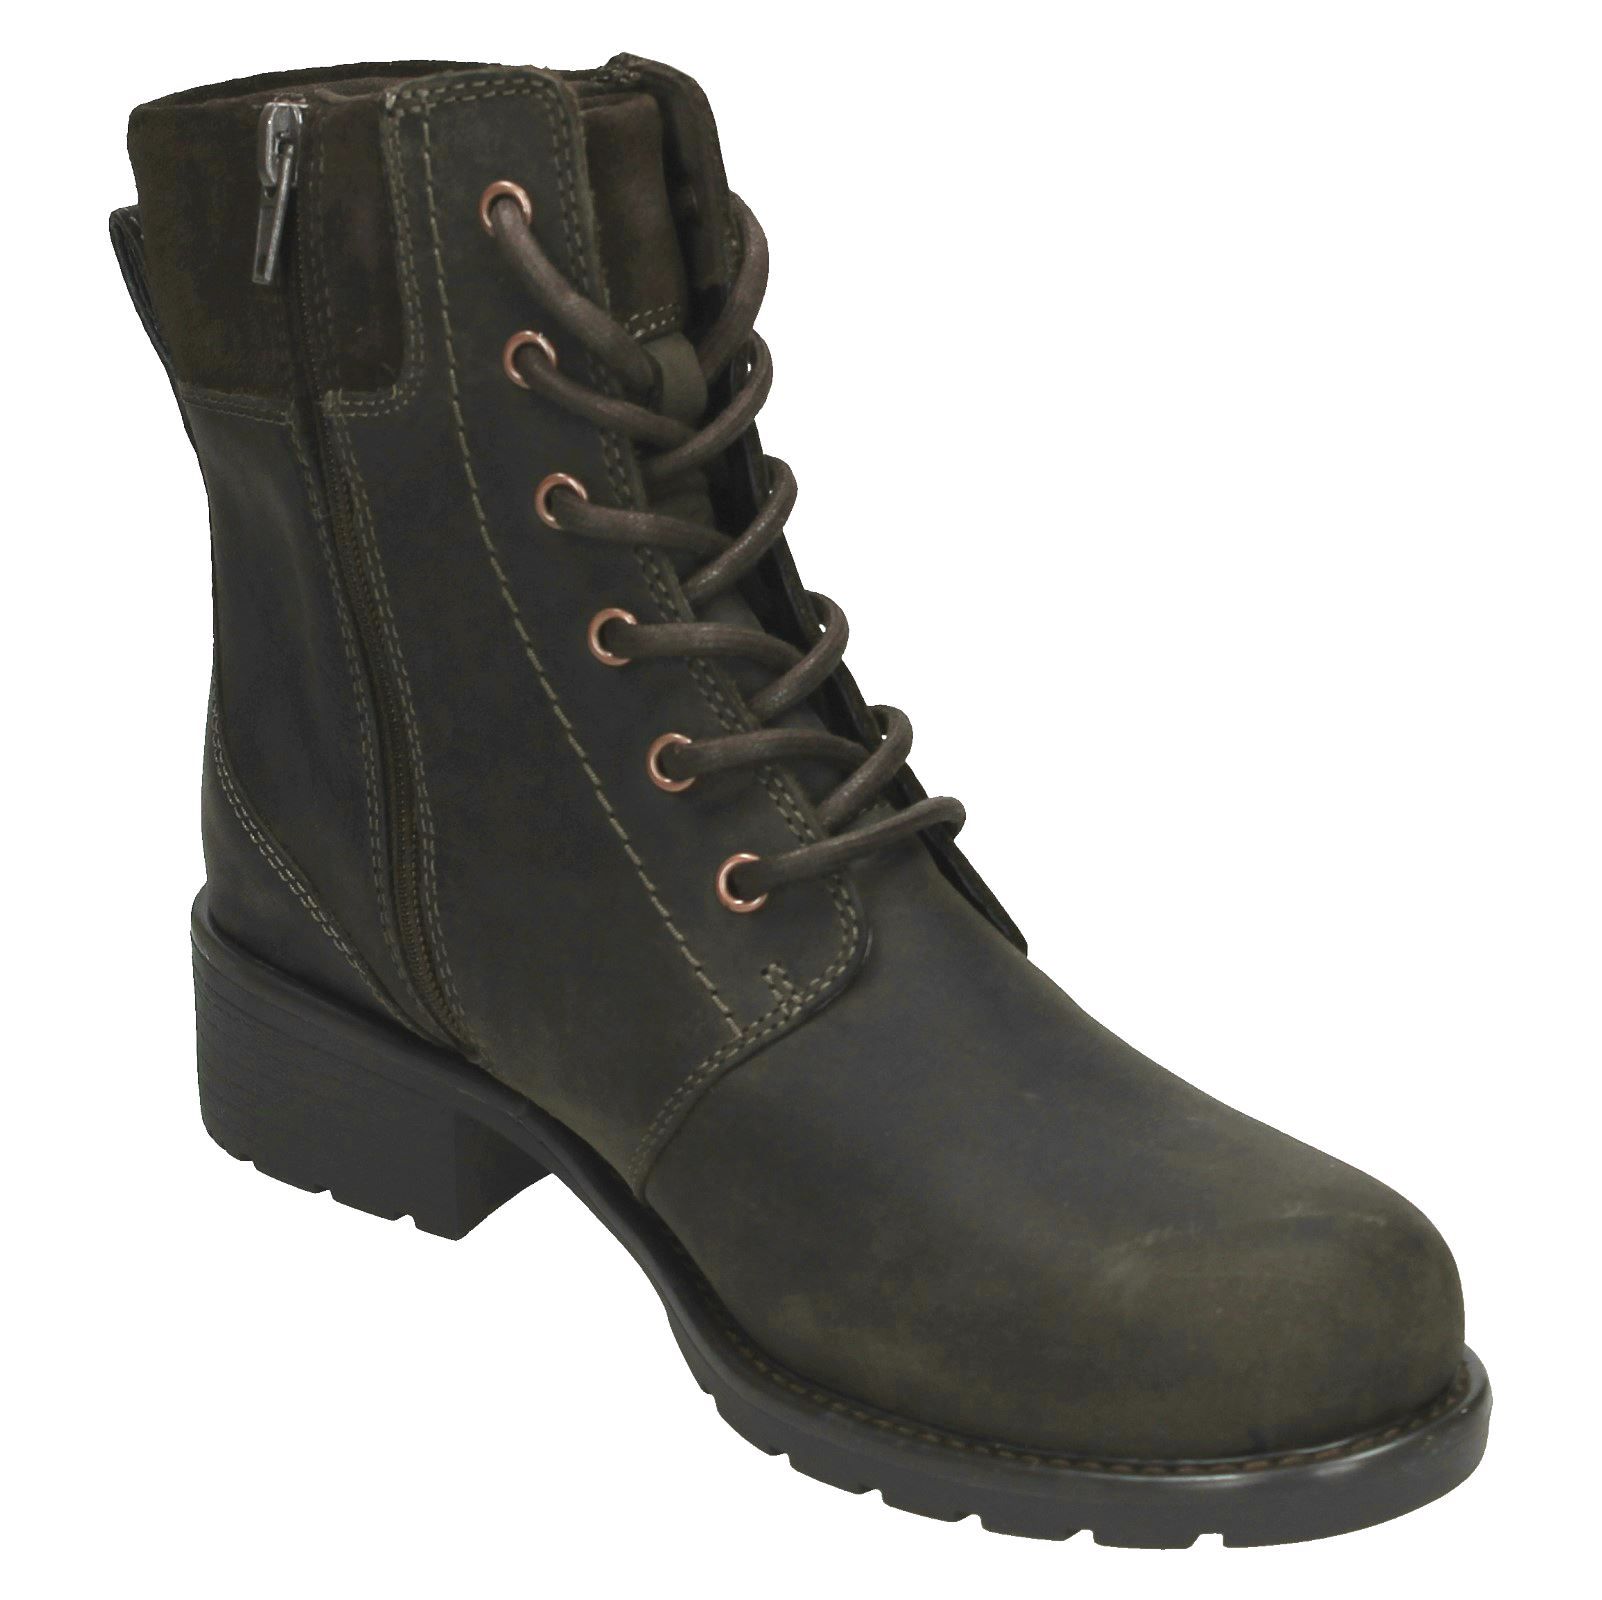 Ladies-Clarks-Casual-Lace-Up-Inside-Zip-Nubuck-Leather-Ankle-Boots-Orinoco-Spice thumbnail 35